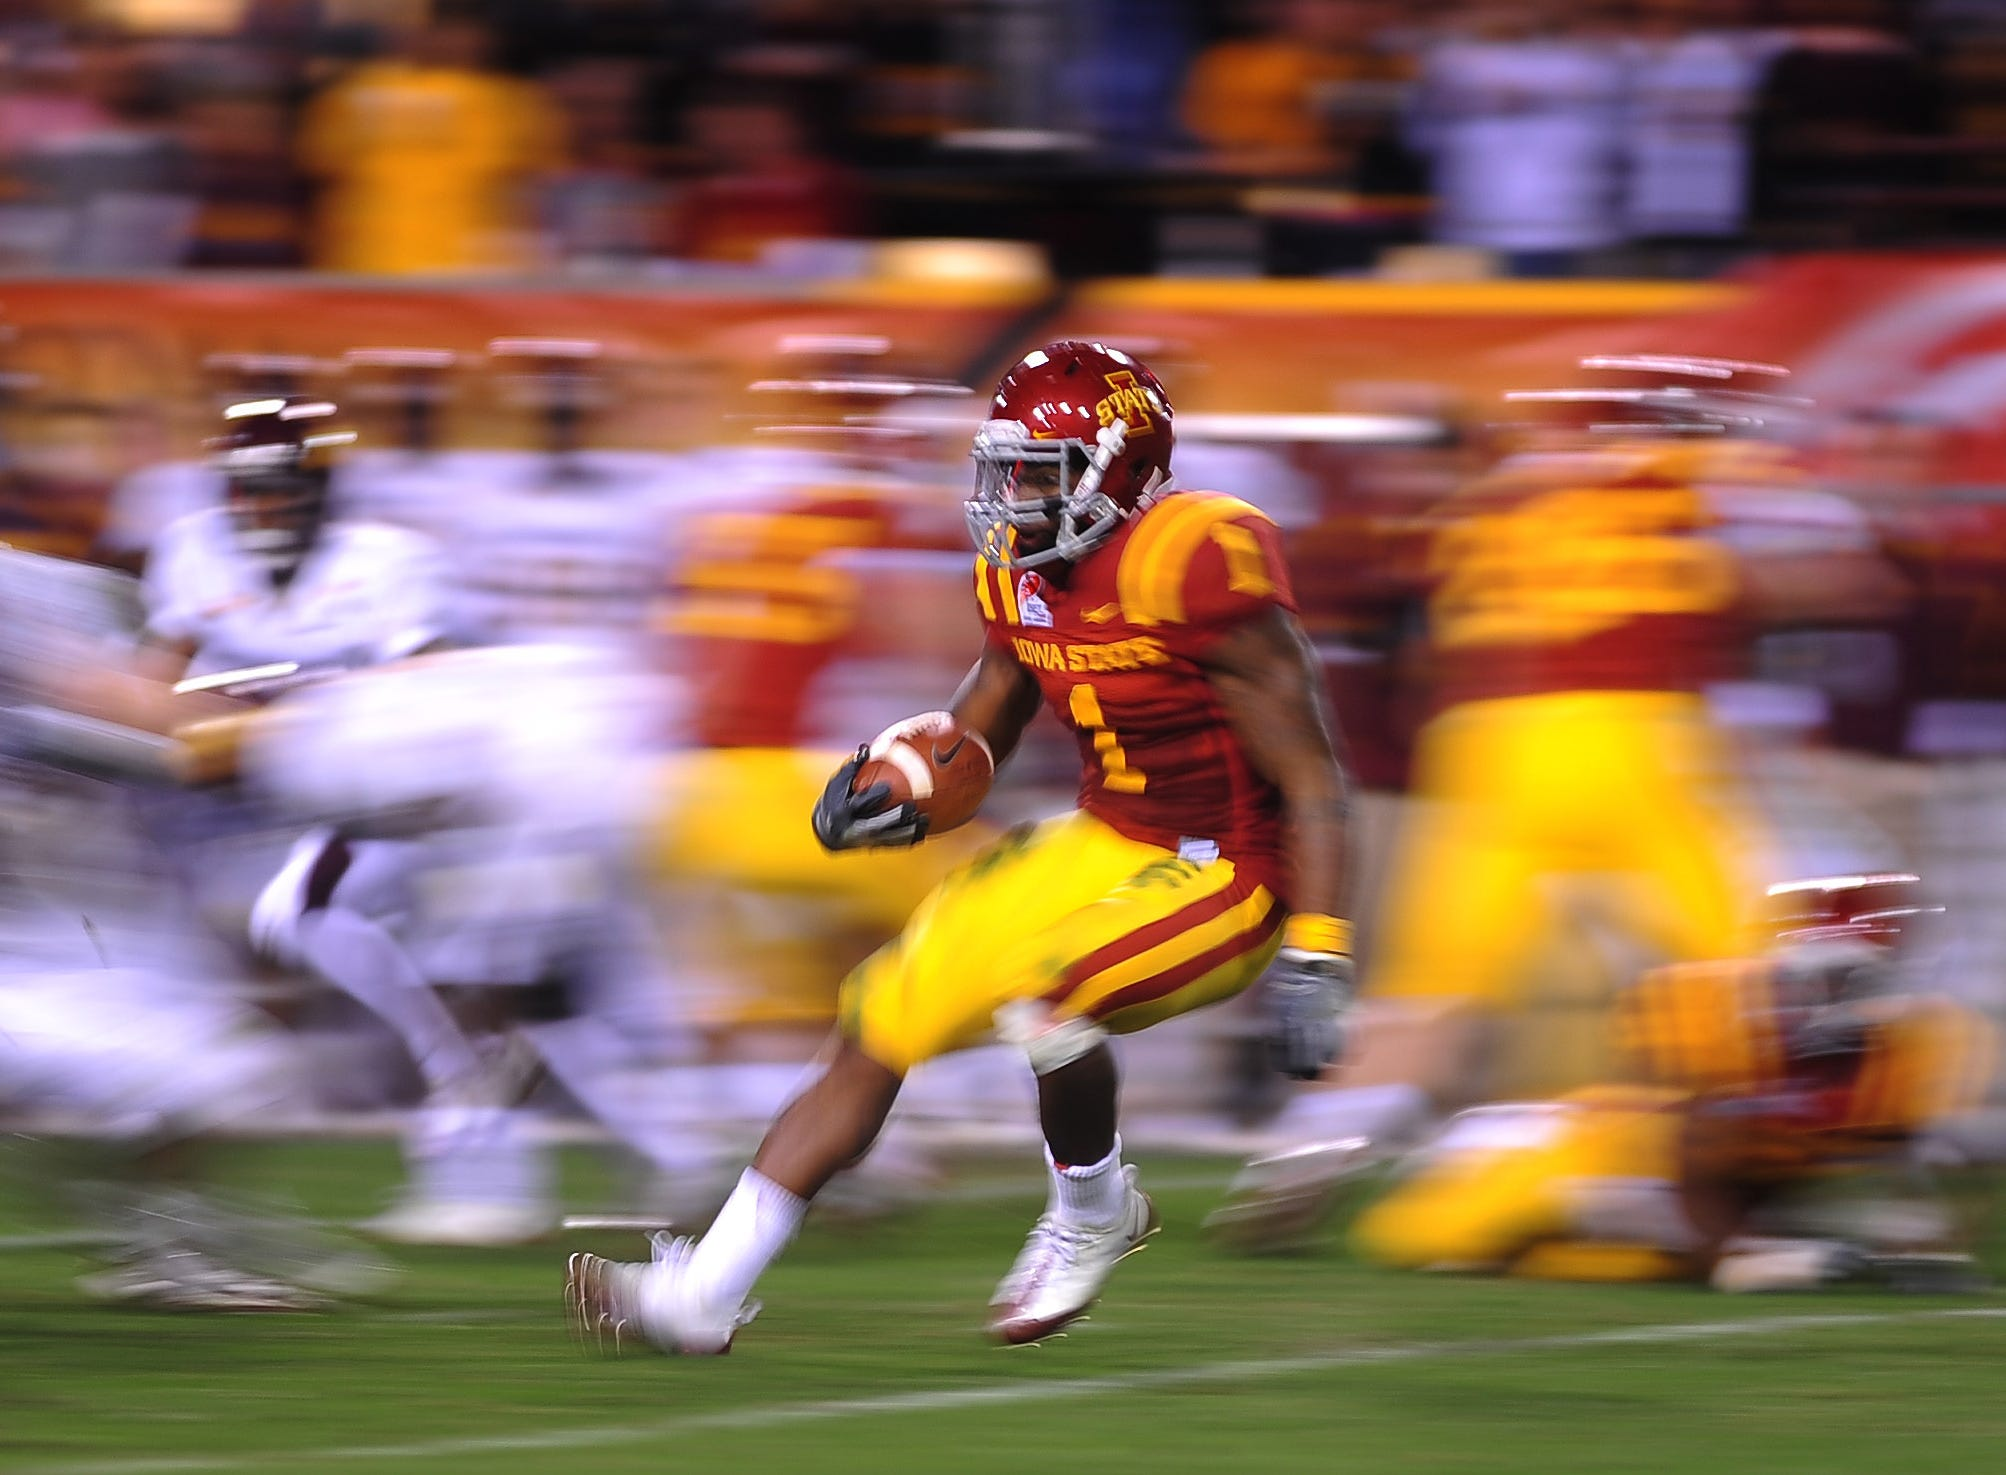 Dec 31, 2009; Tempe, AZ, USA; Iowa State Cyclones running back (1) David Sims runs the ball in the second half against the Minnesota Golden Gophers in the 2009 Insight Bowl at Sun Devil Stadium. Iowa State defeated Minnesota 14-13. Mandatory Credit: Mark J. Rebilas-USA TODAY Sports